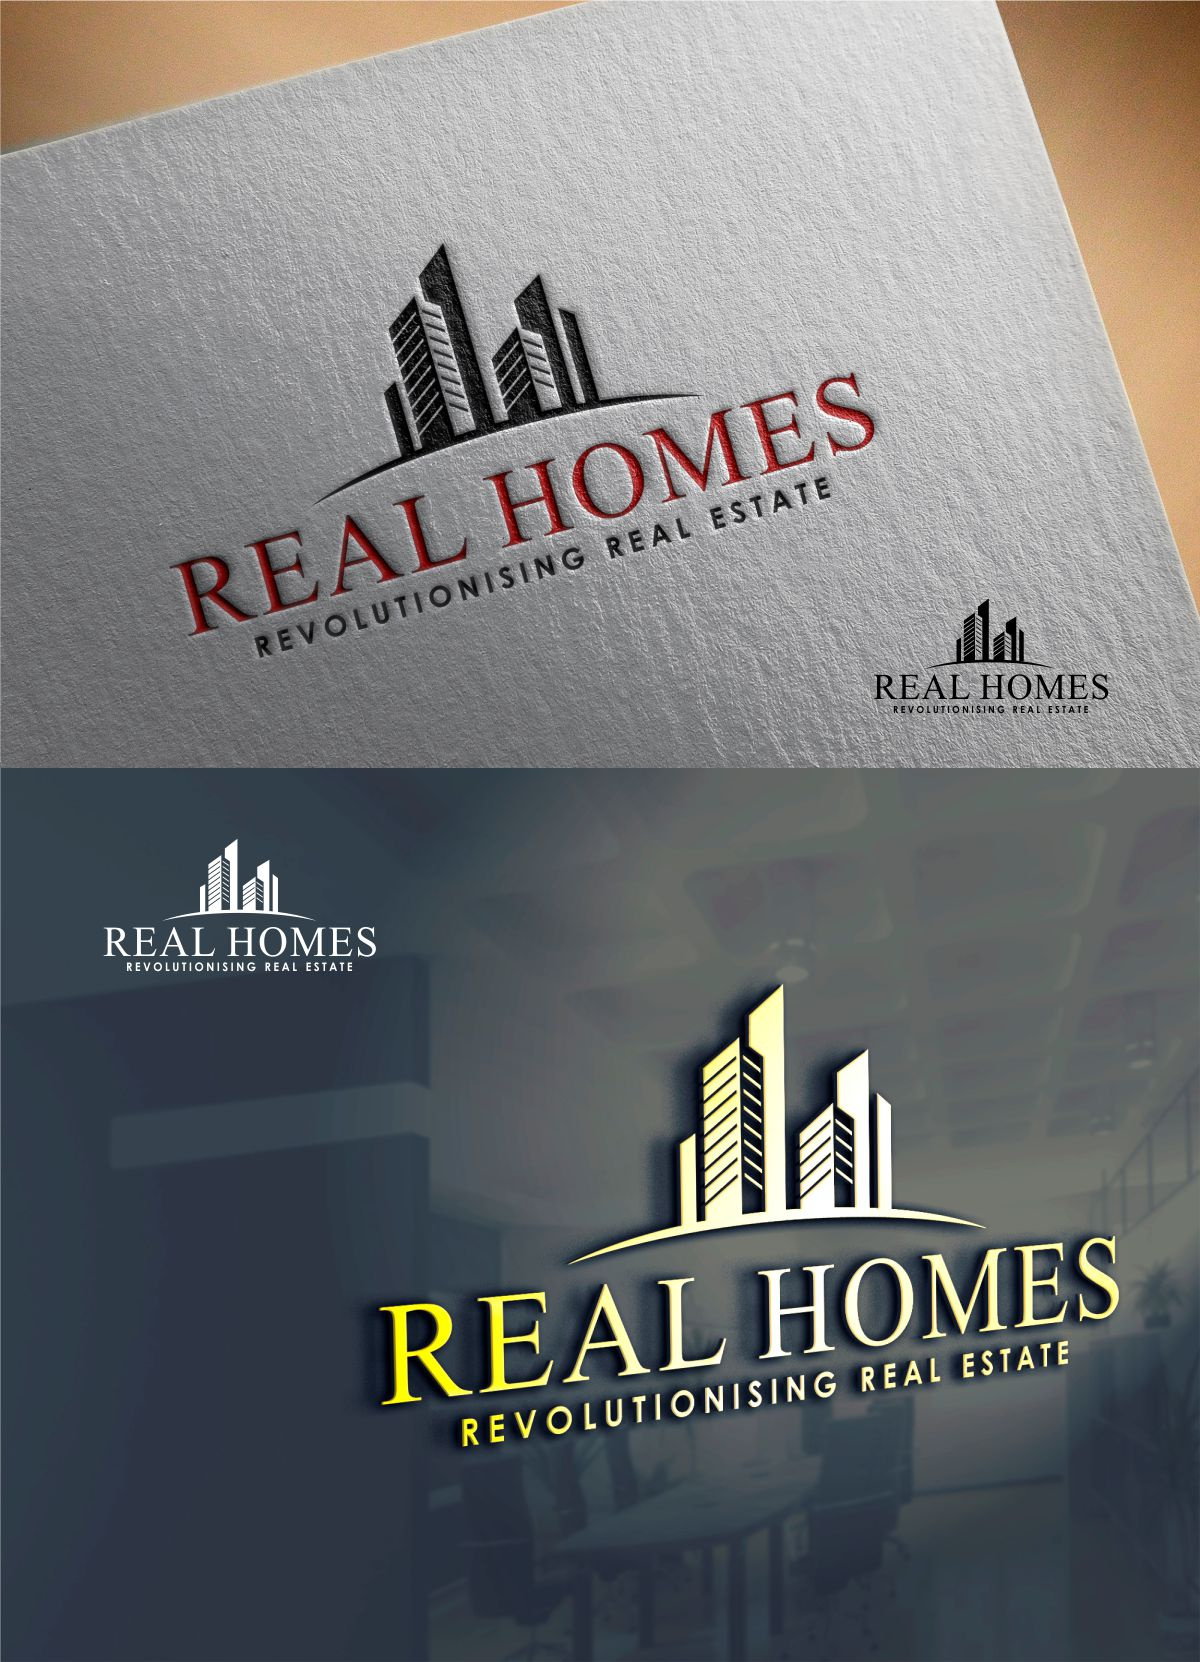 Logo Design by Mhon_Rose - Entry No. 161 in the Logo Design Contest Captivating Logo Design for Real Homes.